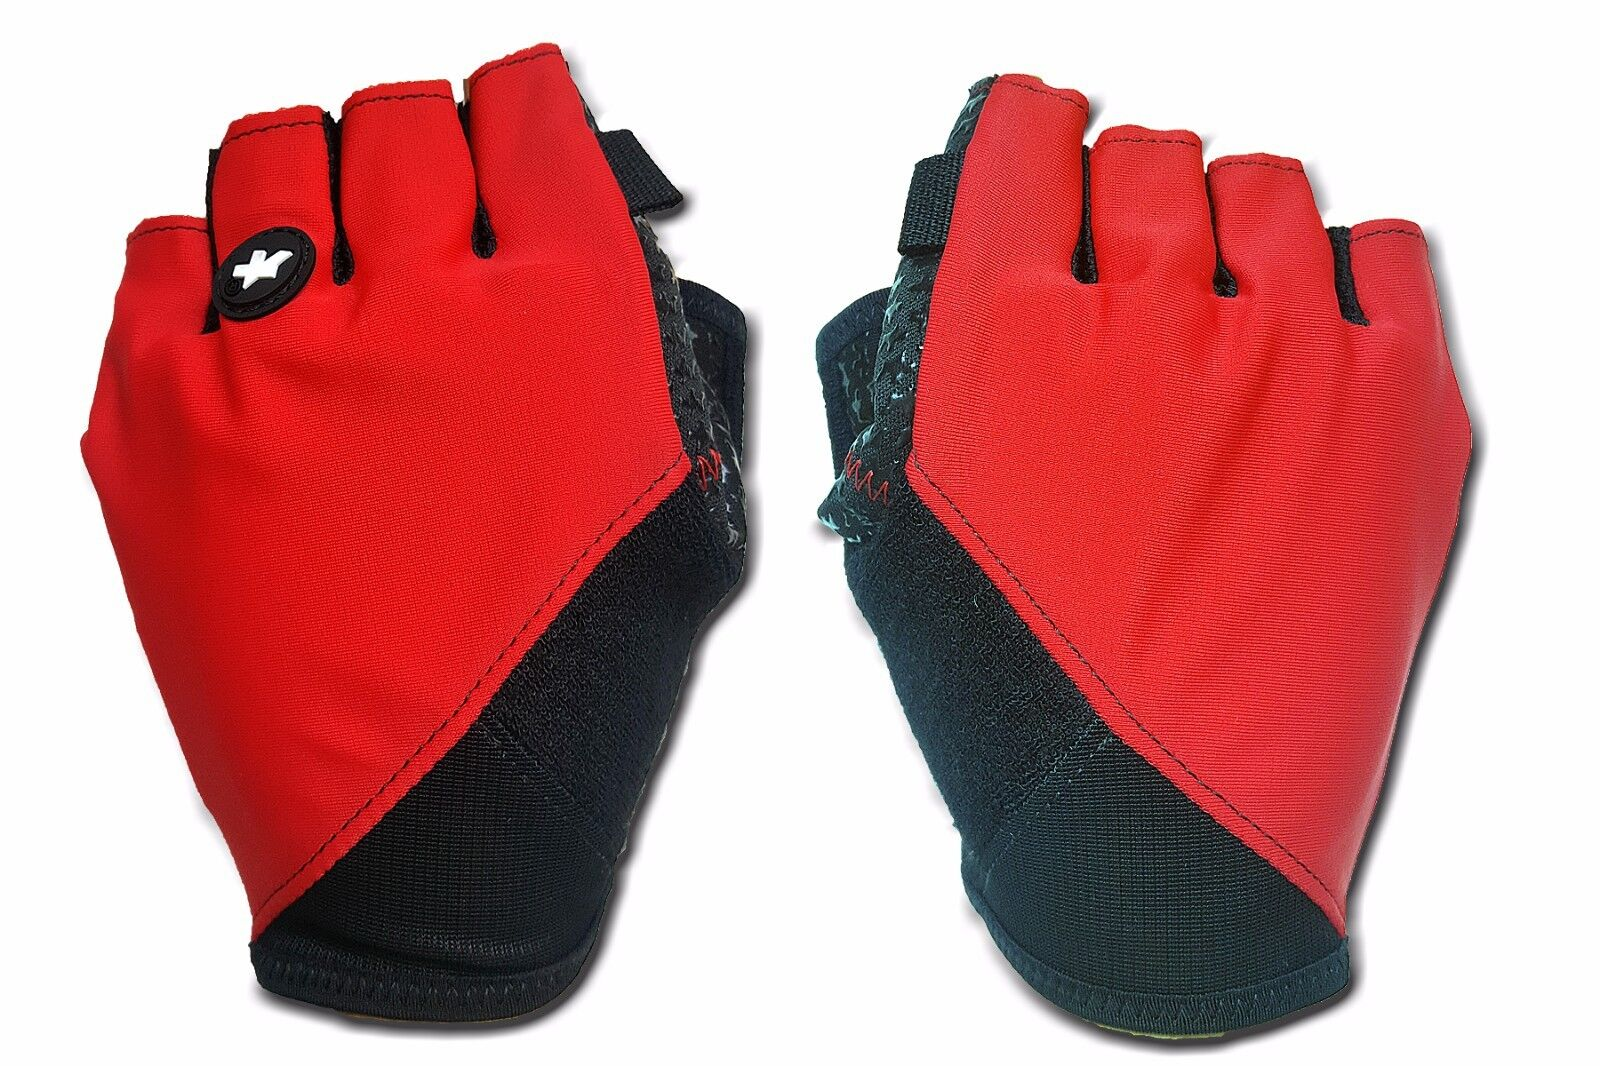 ASSOS ZOMER GLOZEN U S7 Rode  Zwarte Cycling Finger Protection groottes  S,M,L,XL